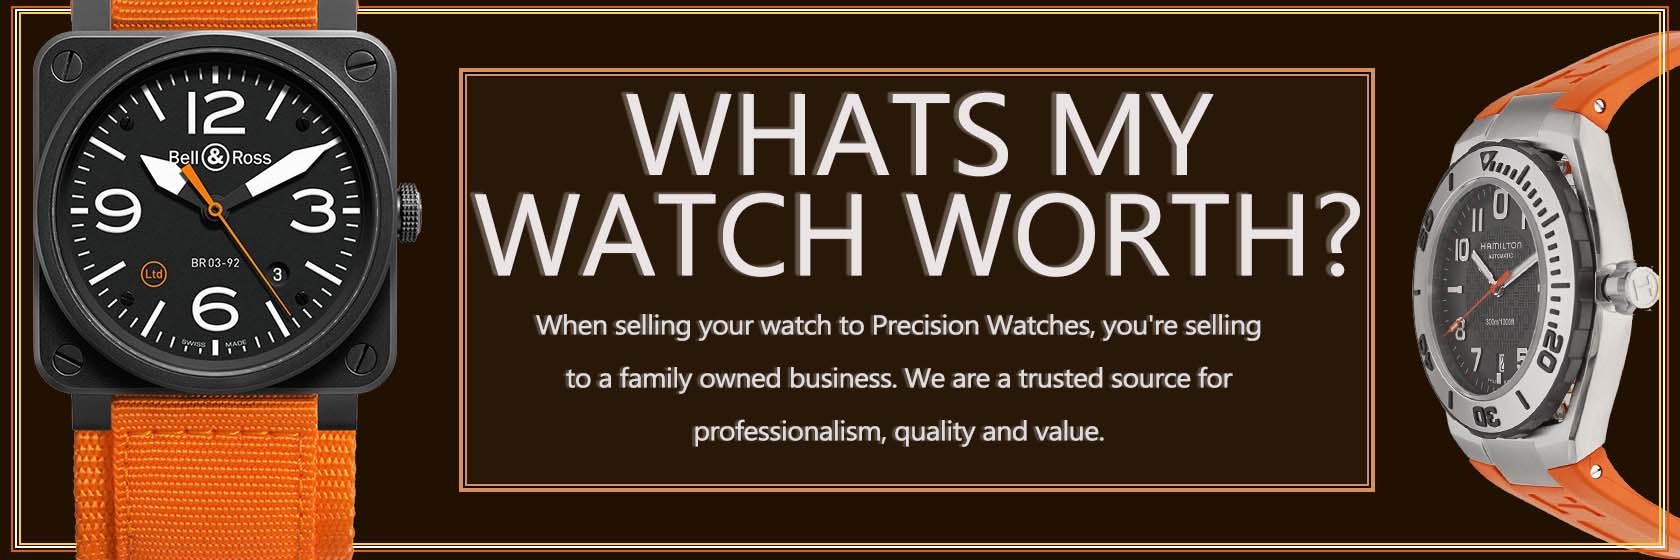 Precision-watches-sell-my-watch